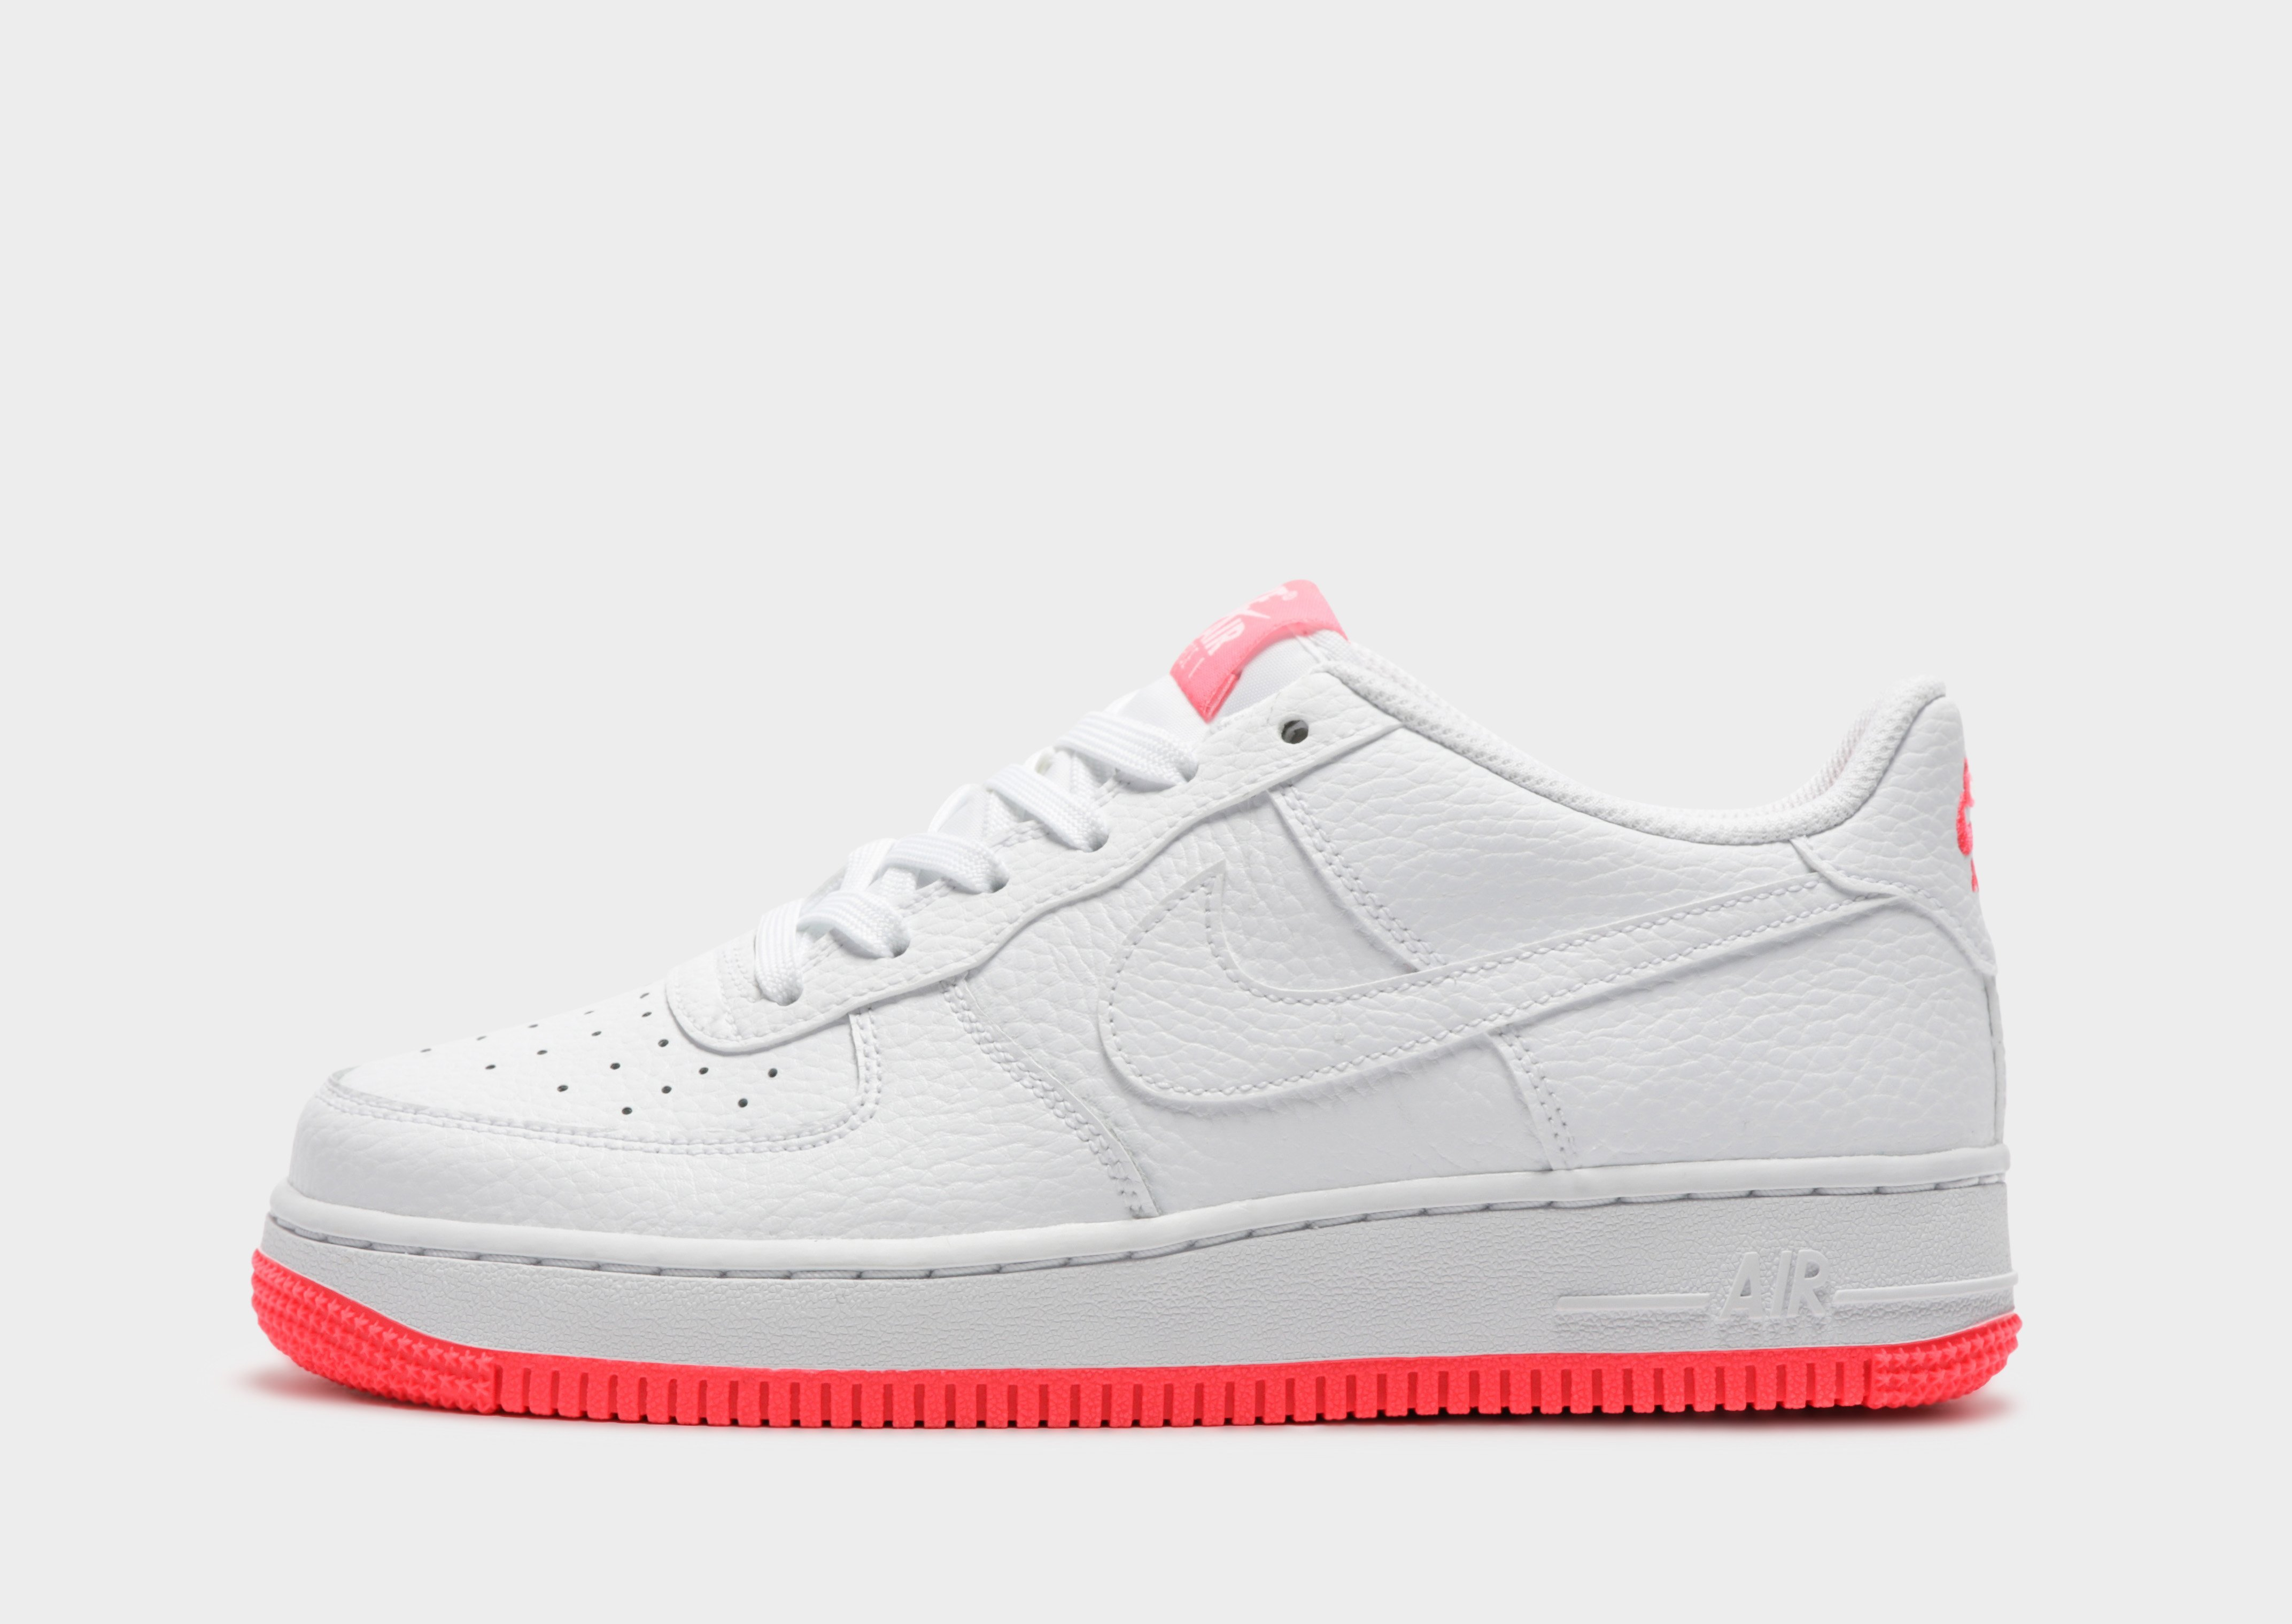 nike air force 1 pink and white